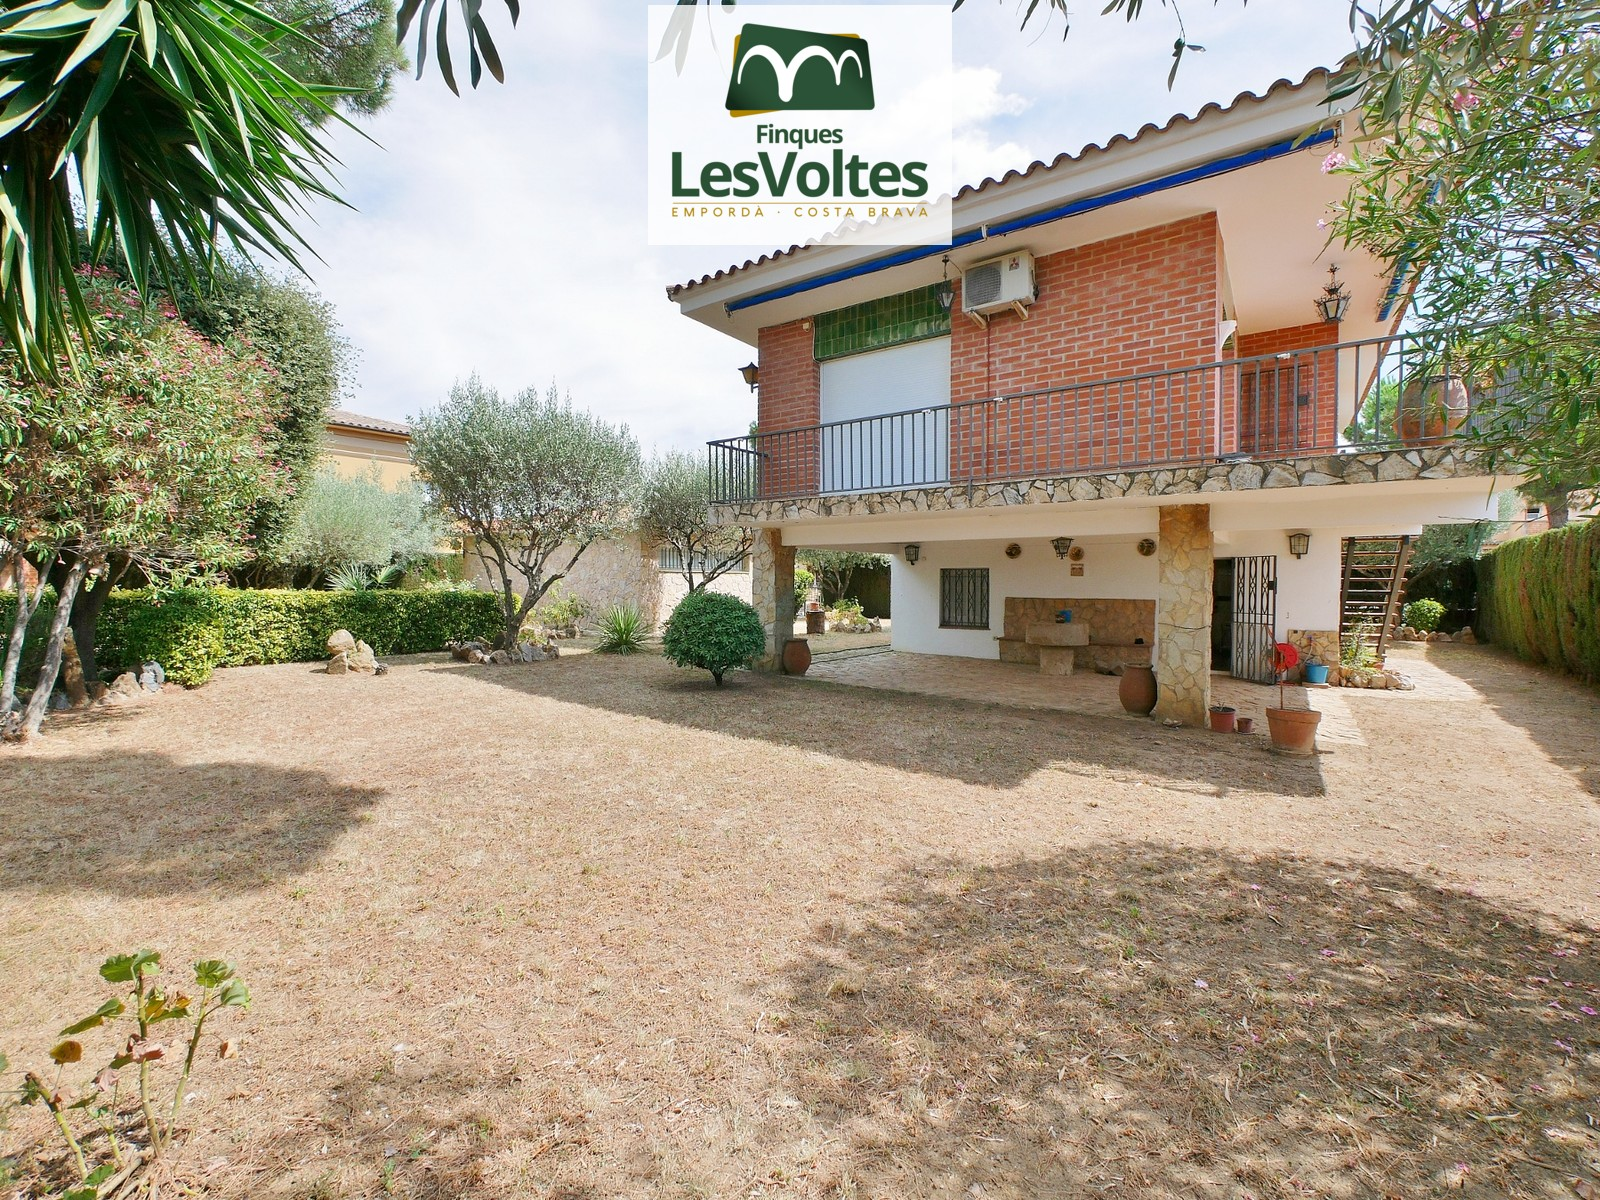 SINGLE FAMILY HOUSE OF 185 M2 WITH INDEPENDENT GARAGE, TERRACE AND GARDEN OF 670 M2 FOR SALE IN LA BISBAL D'EMPORDÀ.